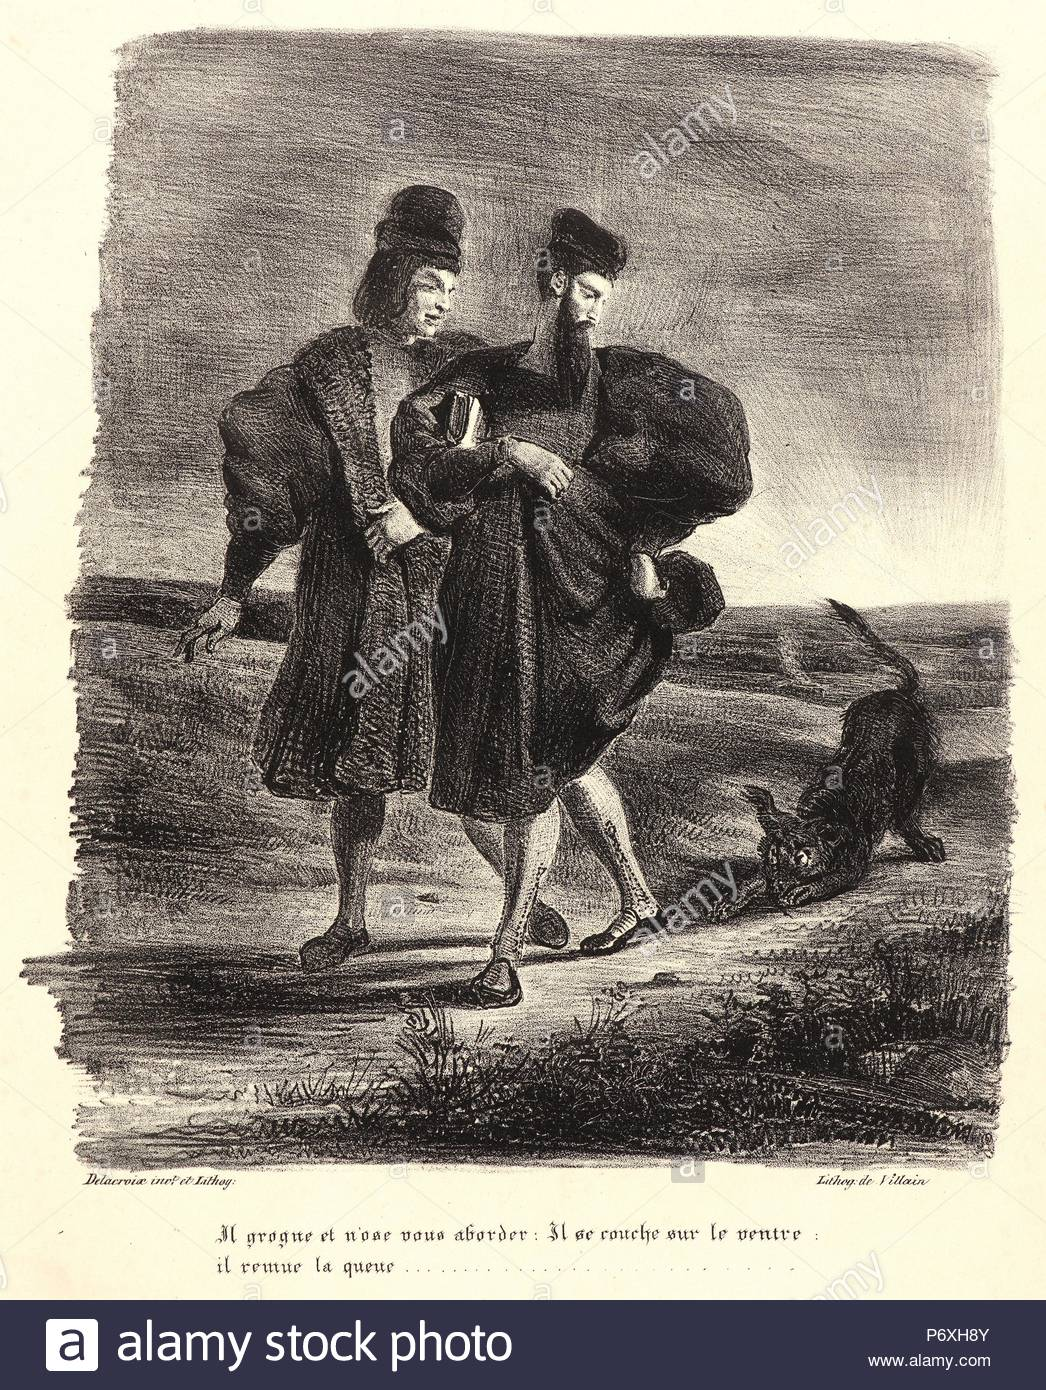 Eugène Delacroix (French, 1798 - 1863). Faust, Mephistopheles, and the Water Dog (Faust, Méphistophélès et le barbet), 1828. From Faust. Lithograph. Second of four states. - Stock Image